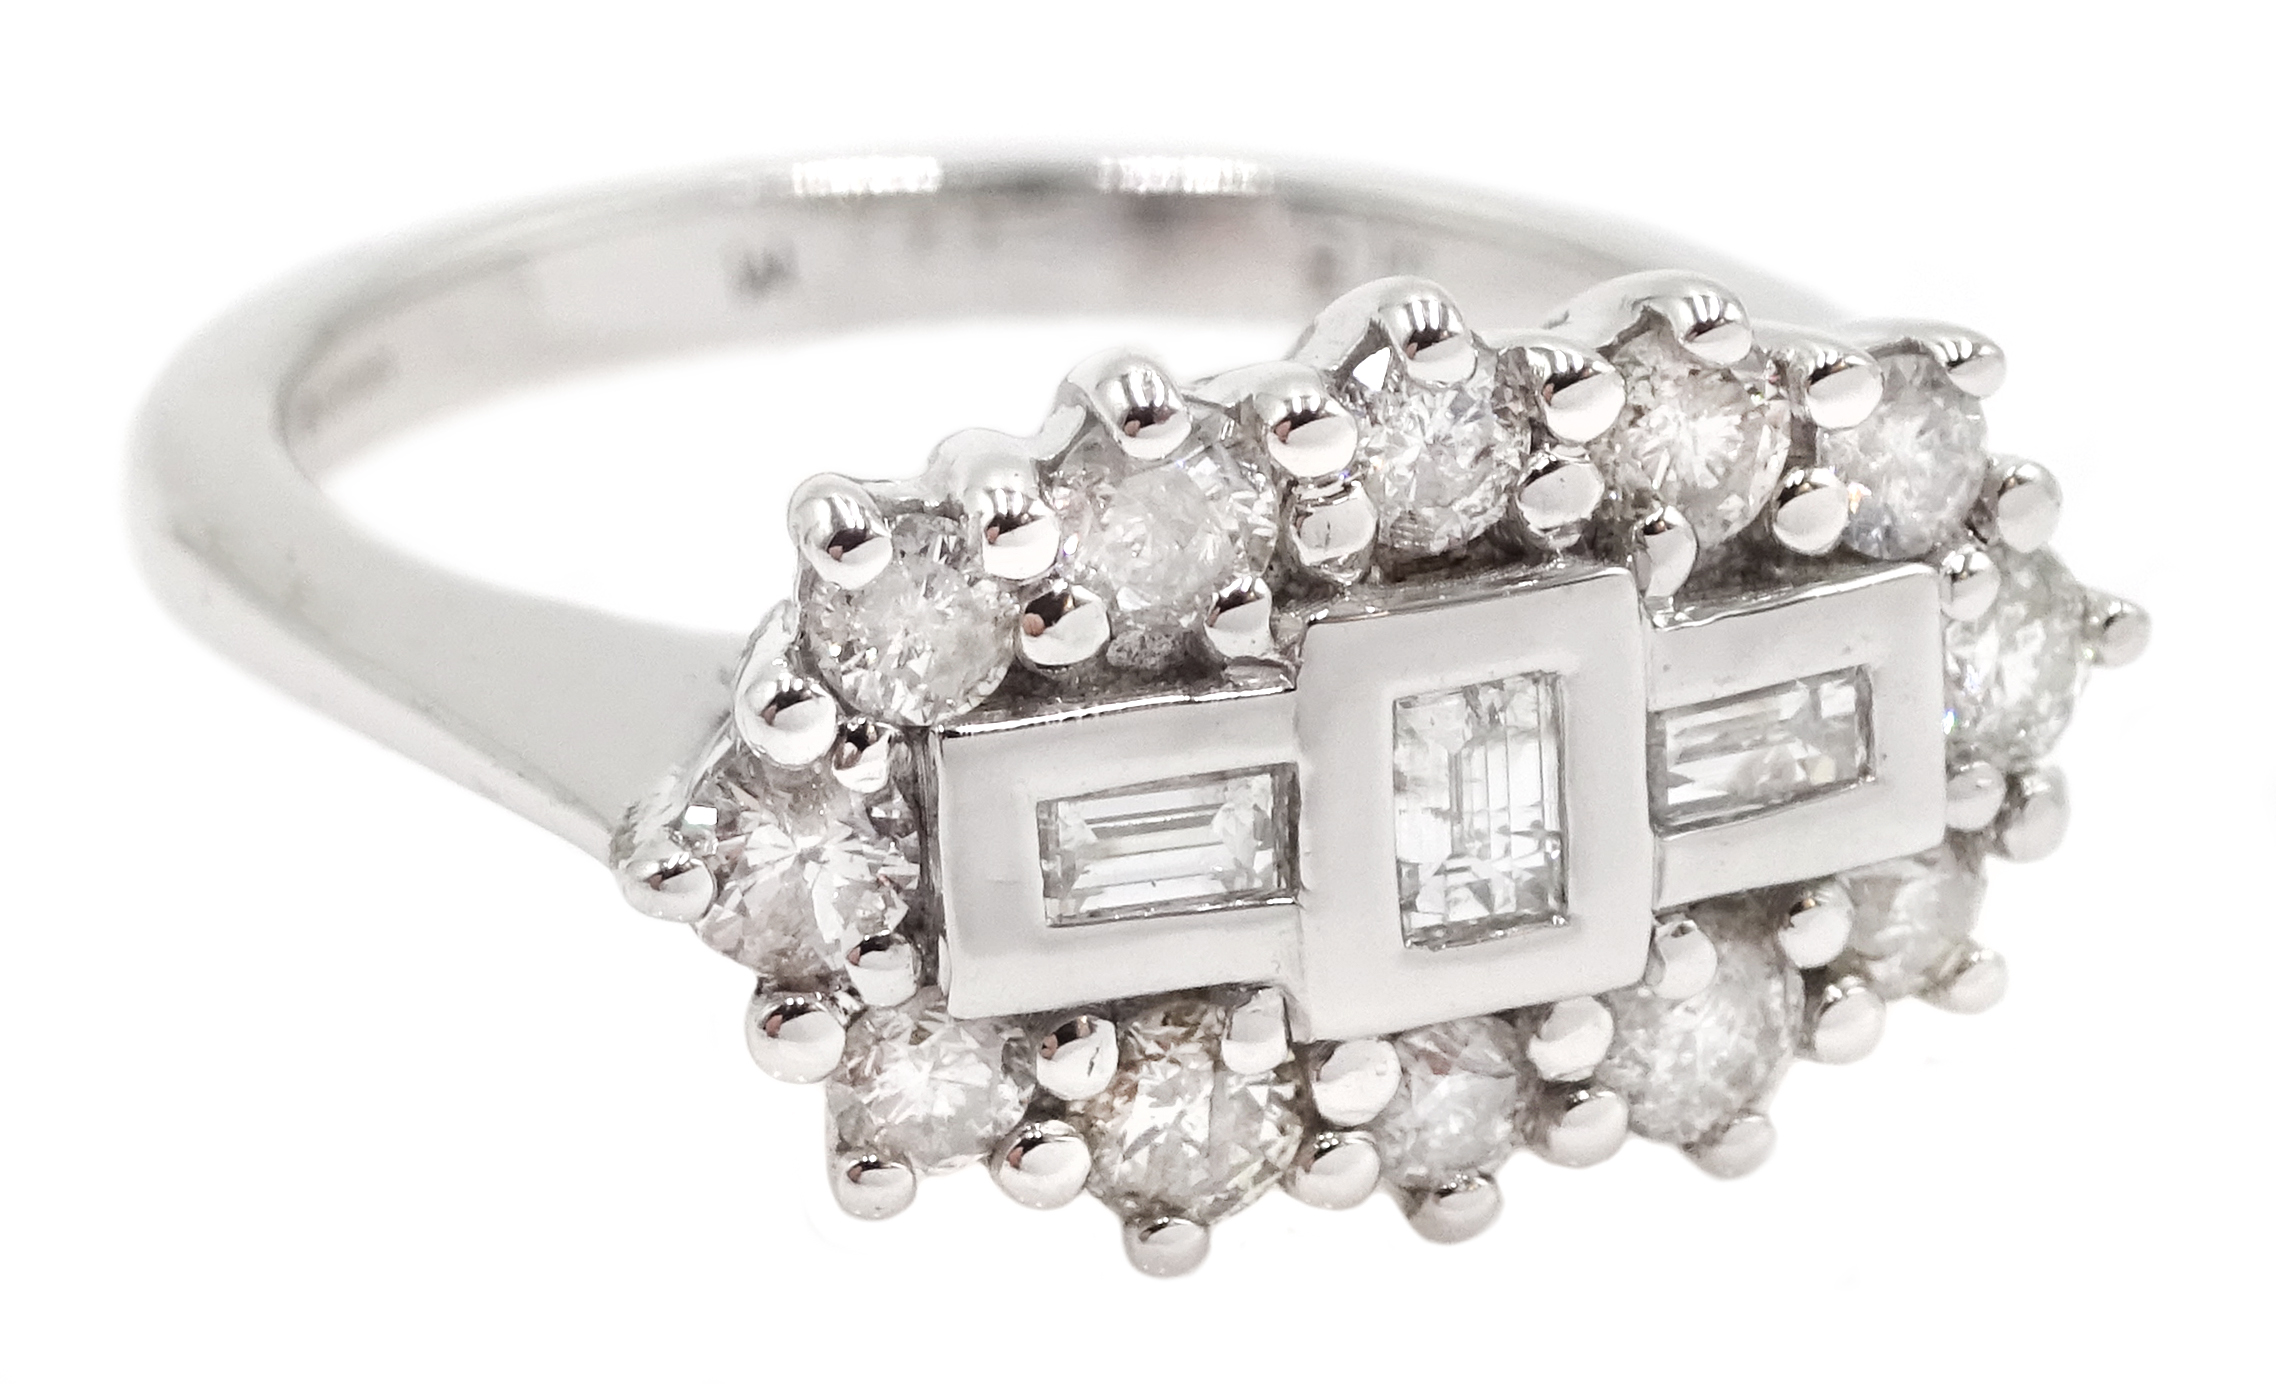 18ct white gold and diamond cluster ring, diamond total weight 0.75 carat, free UK mainland shipping - Image 3 of 6